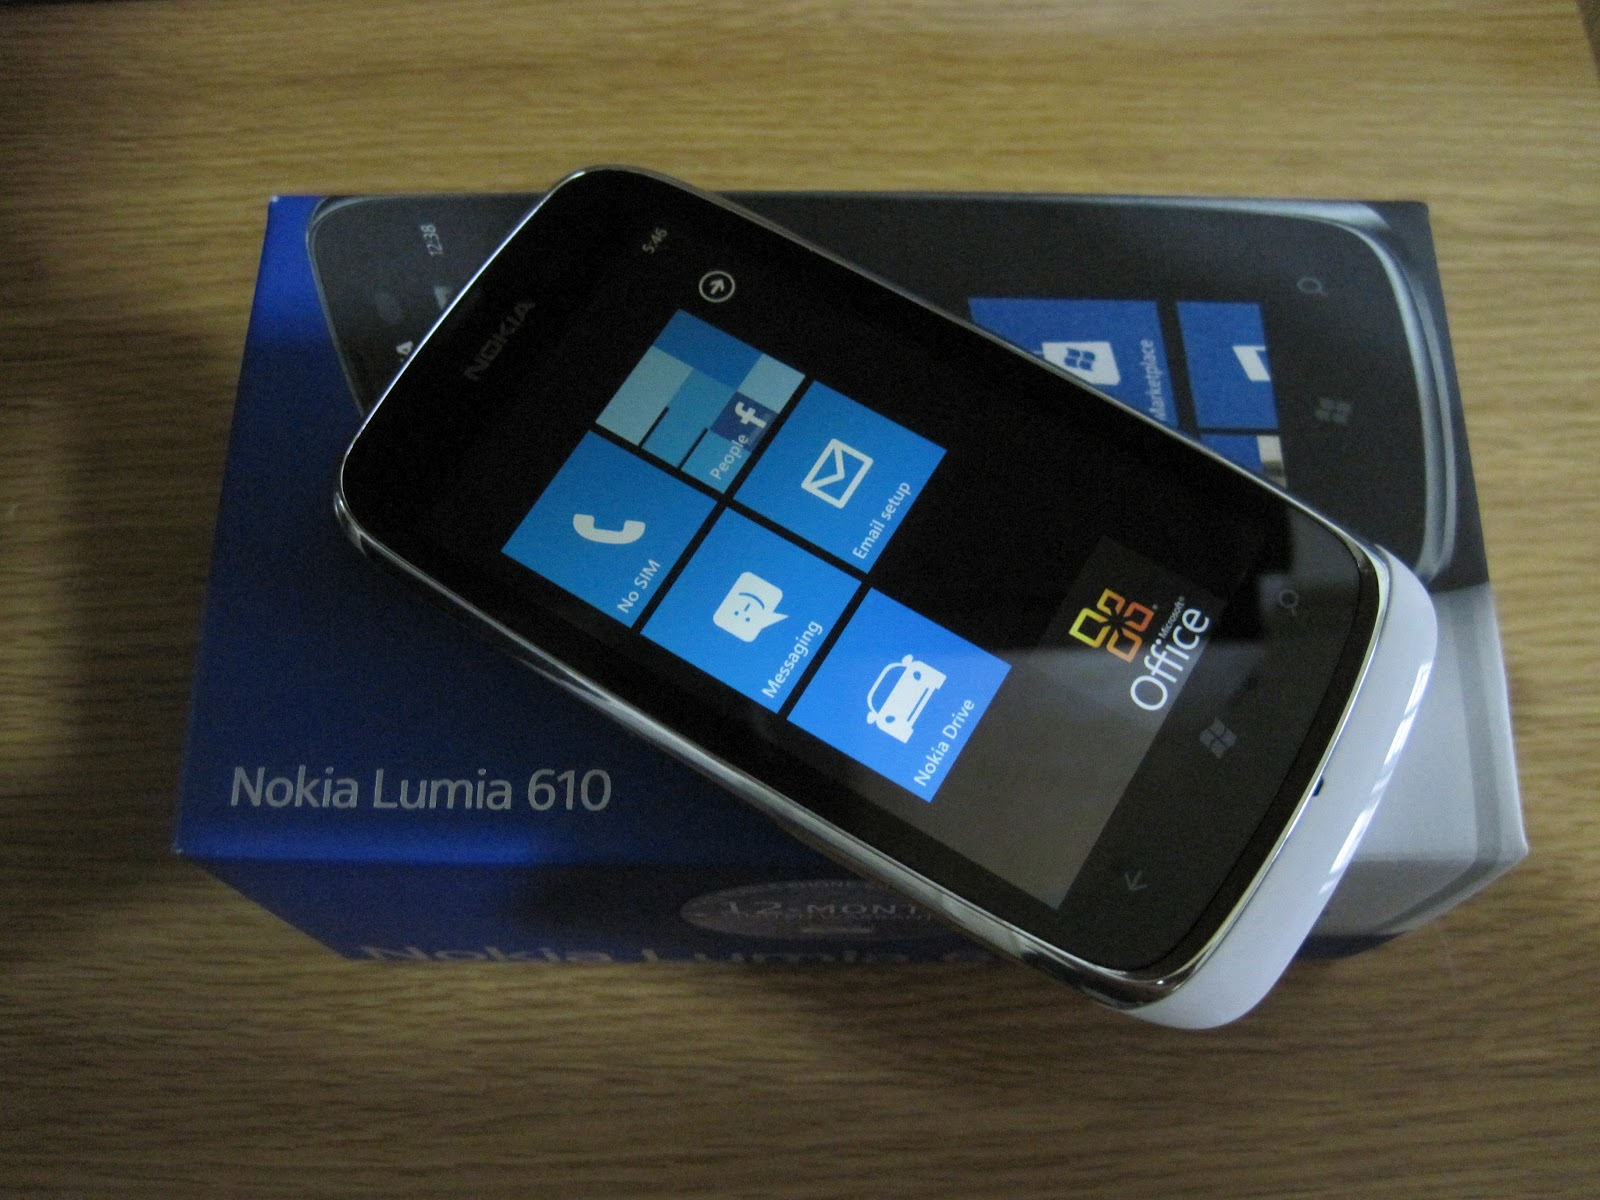 Nokia Lumia 610 Hands-on Review